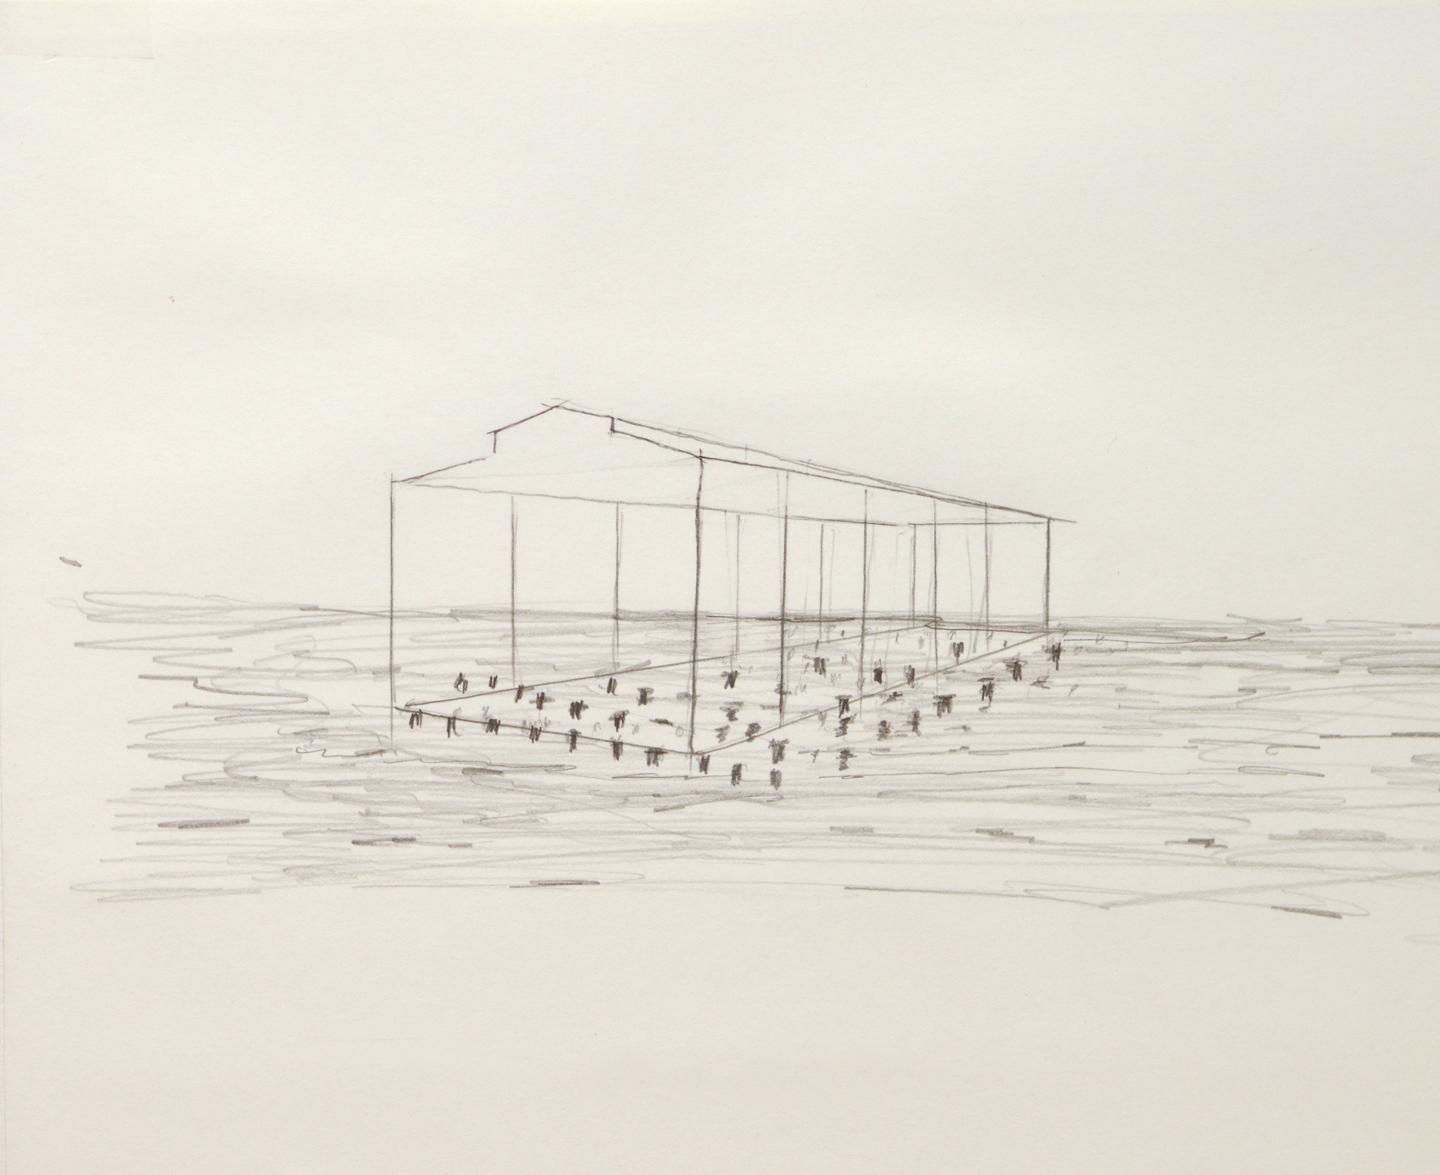 David Hammons (b. 1943), Sketch for Day's End, a proposed public art project.